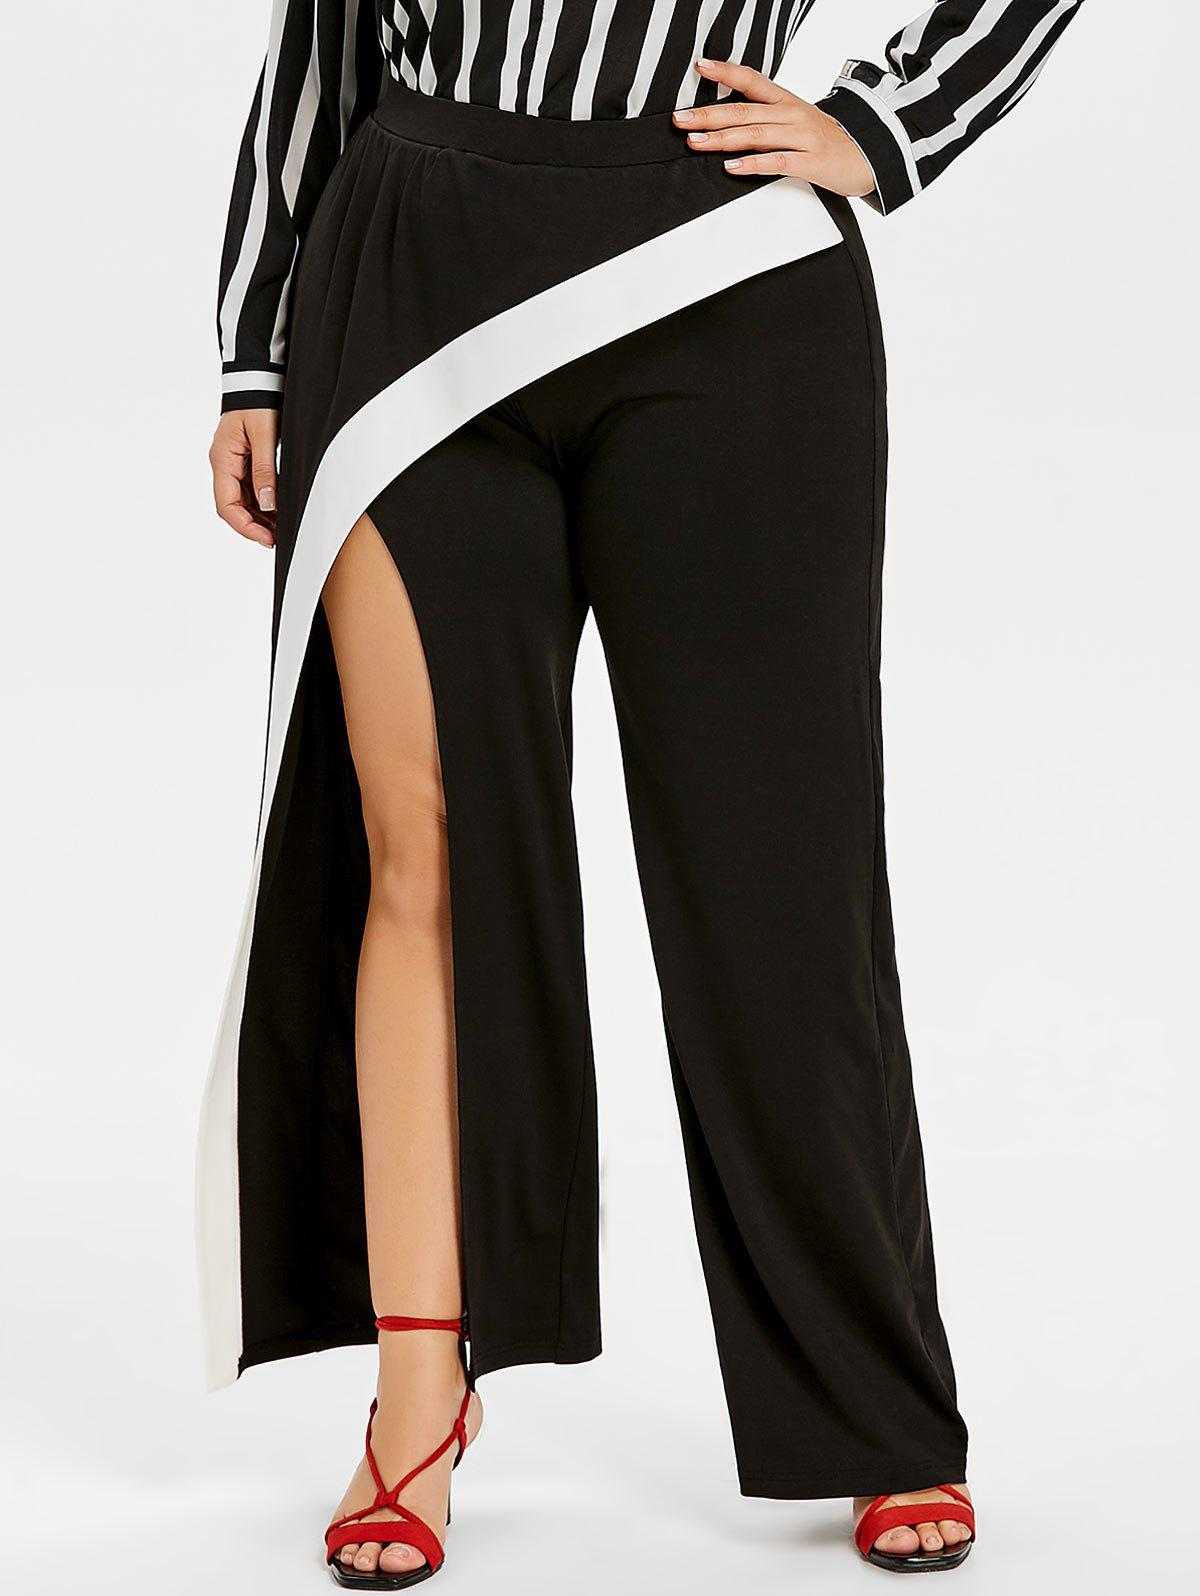 Plus Size Wide Leg Slit Wrap Pants - BLACK L